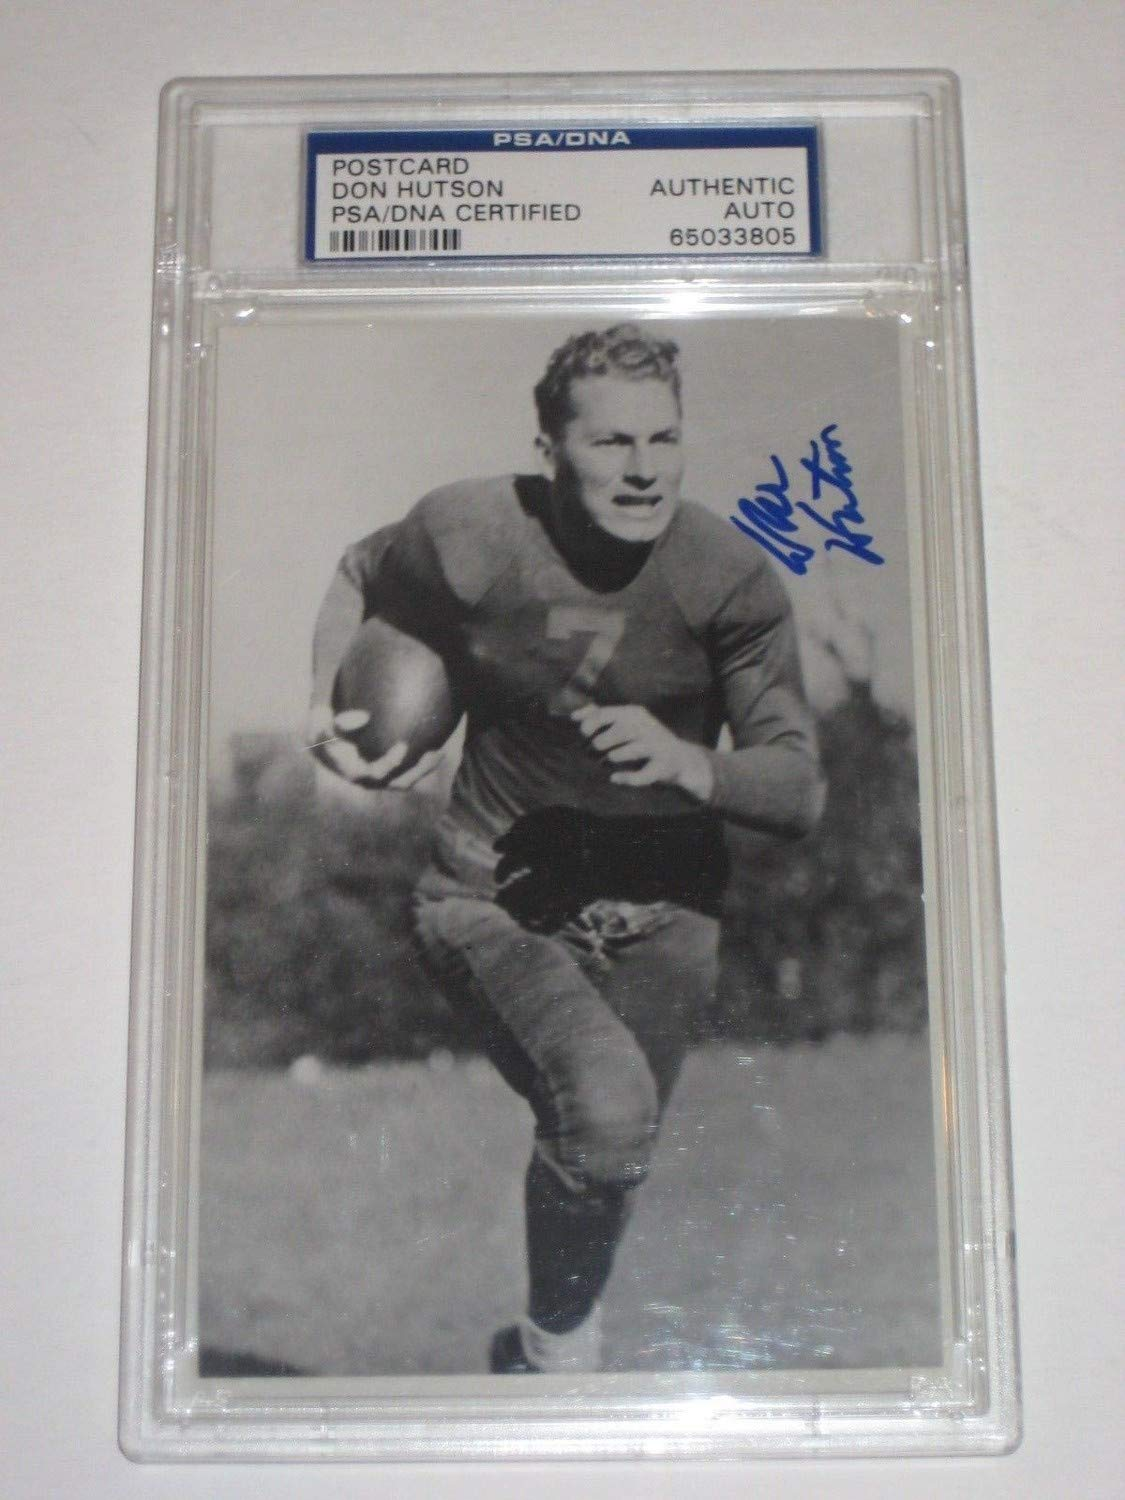 Don Hutson Packers Autographed Signed Postcard PSA/DNA Authentic